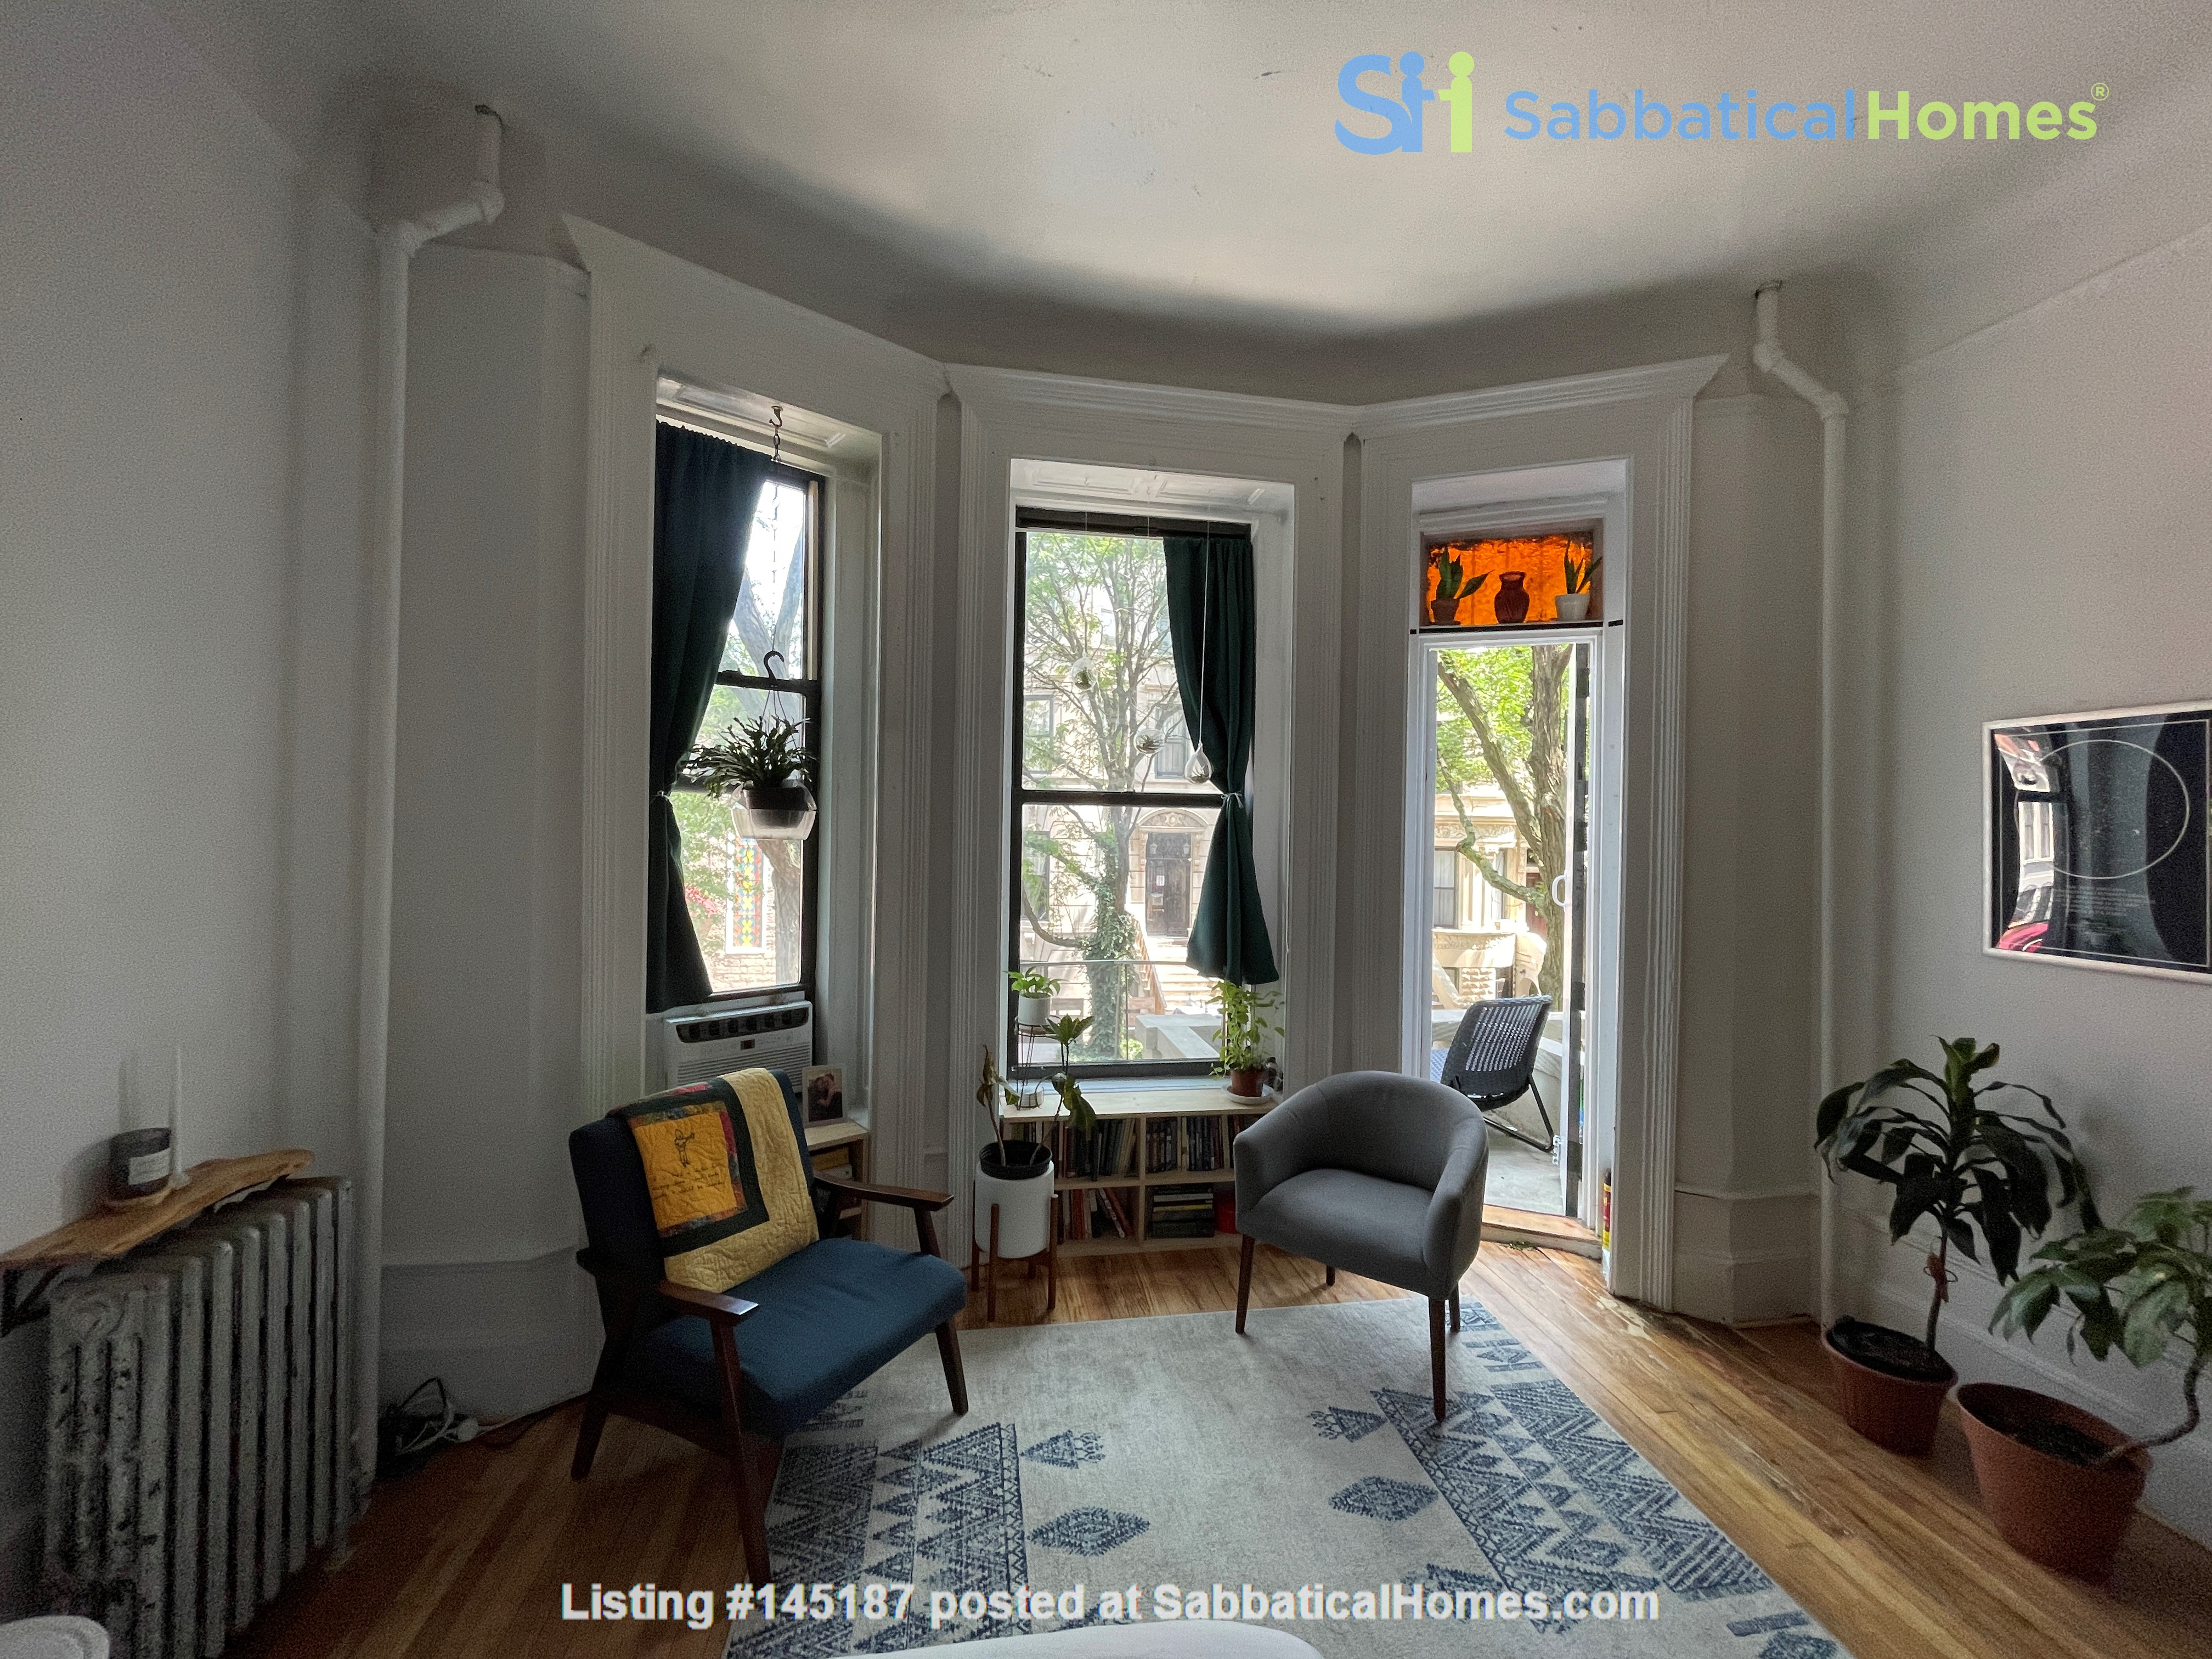 Historic South Harlem Studio with Balcony, short walk to Central Park! Home Rental in New York 0